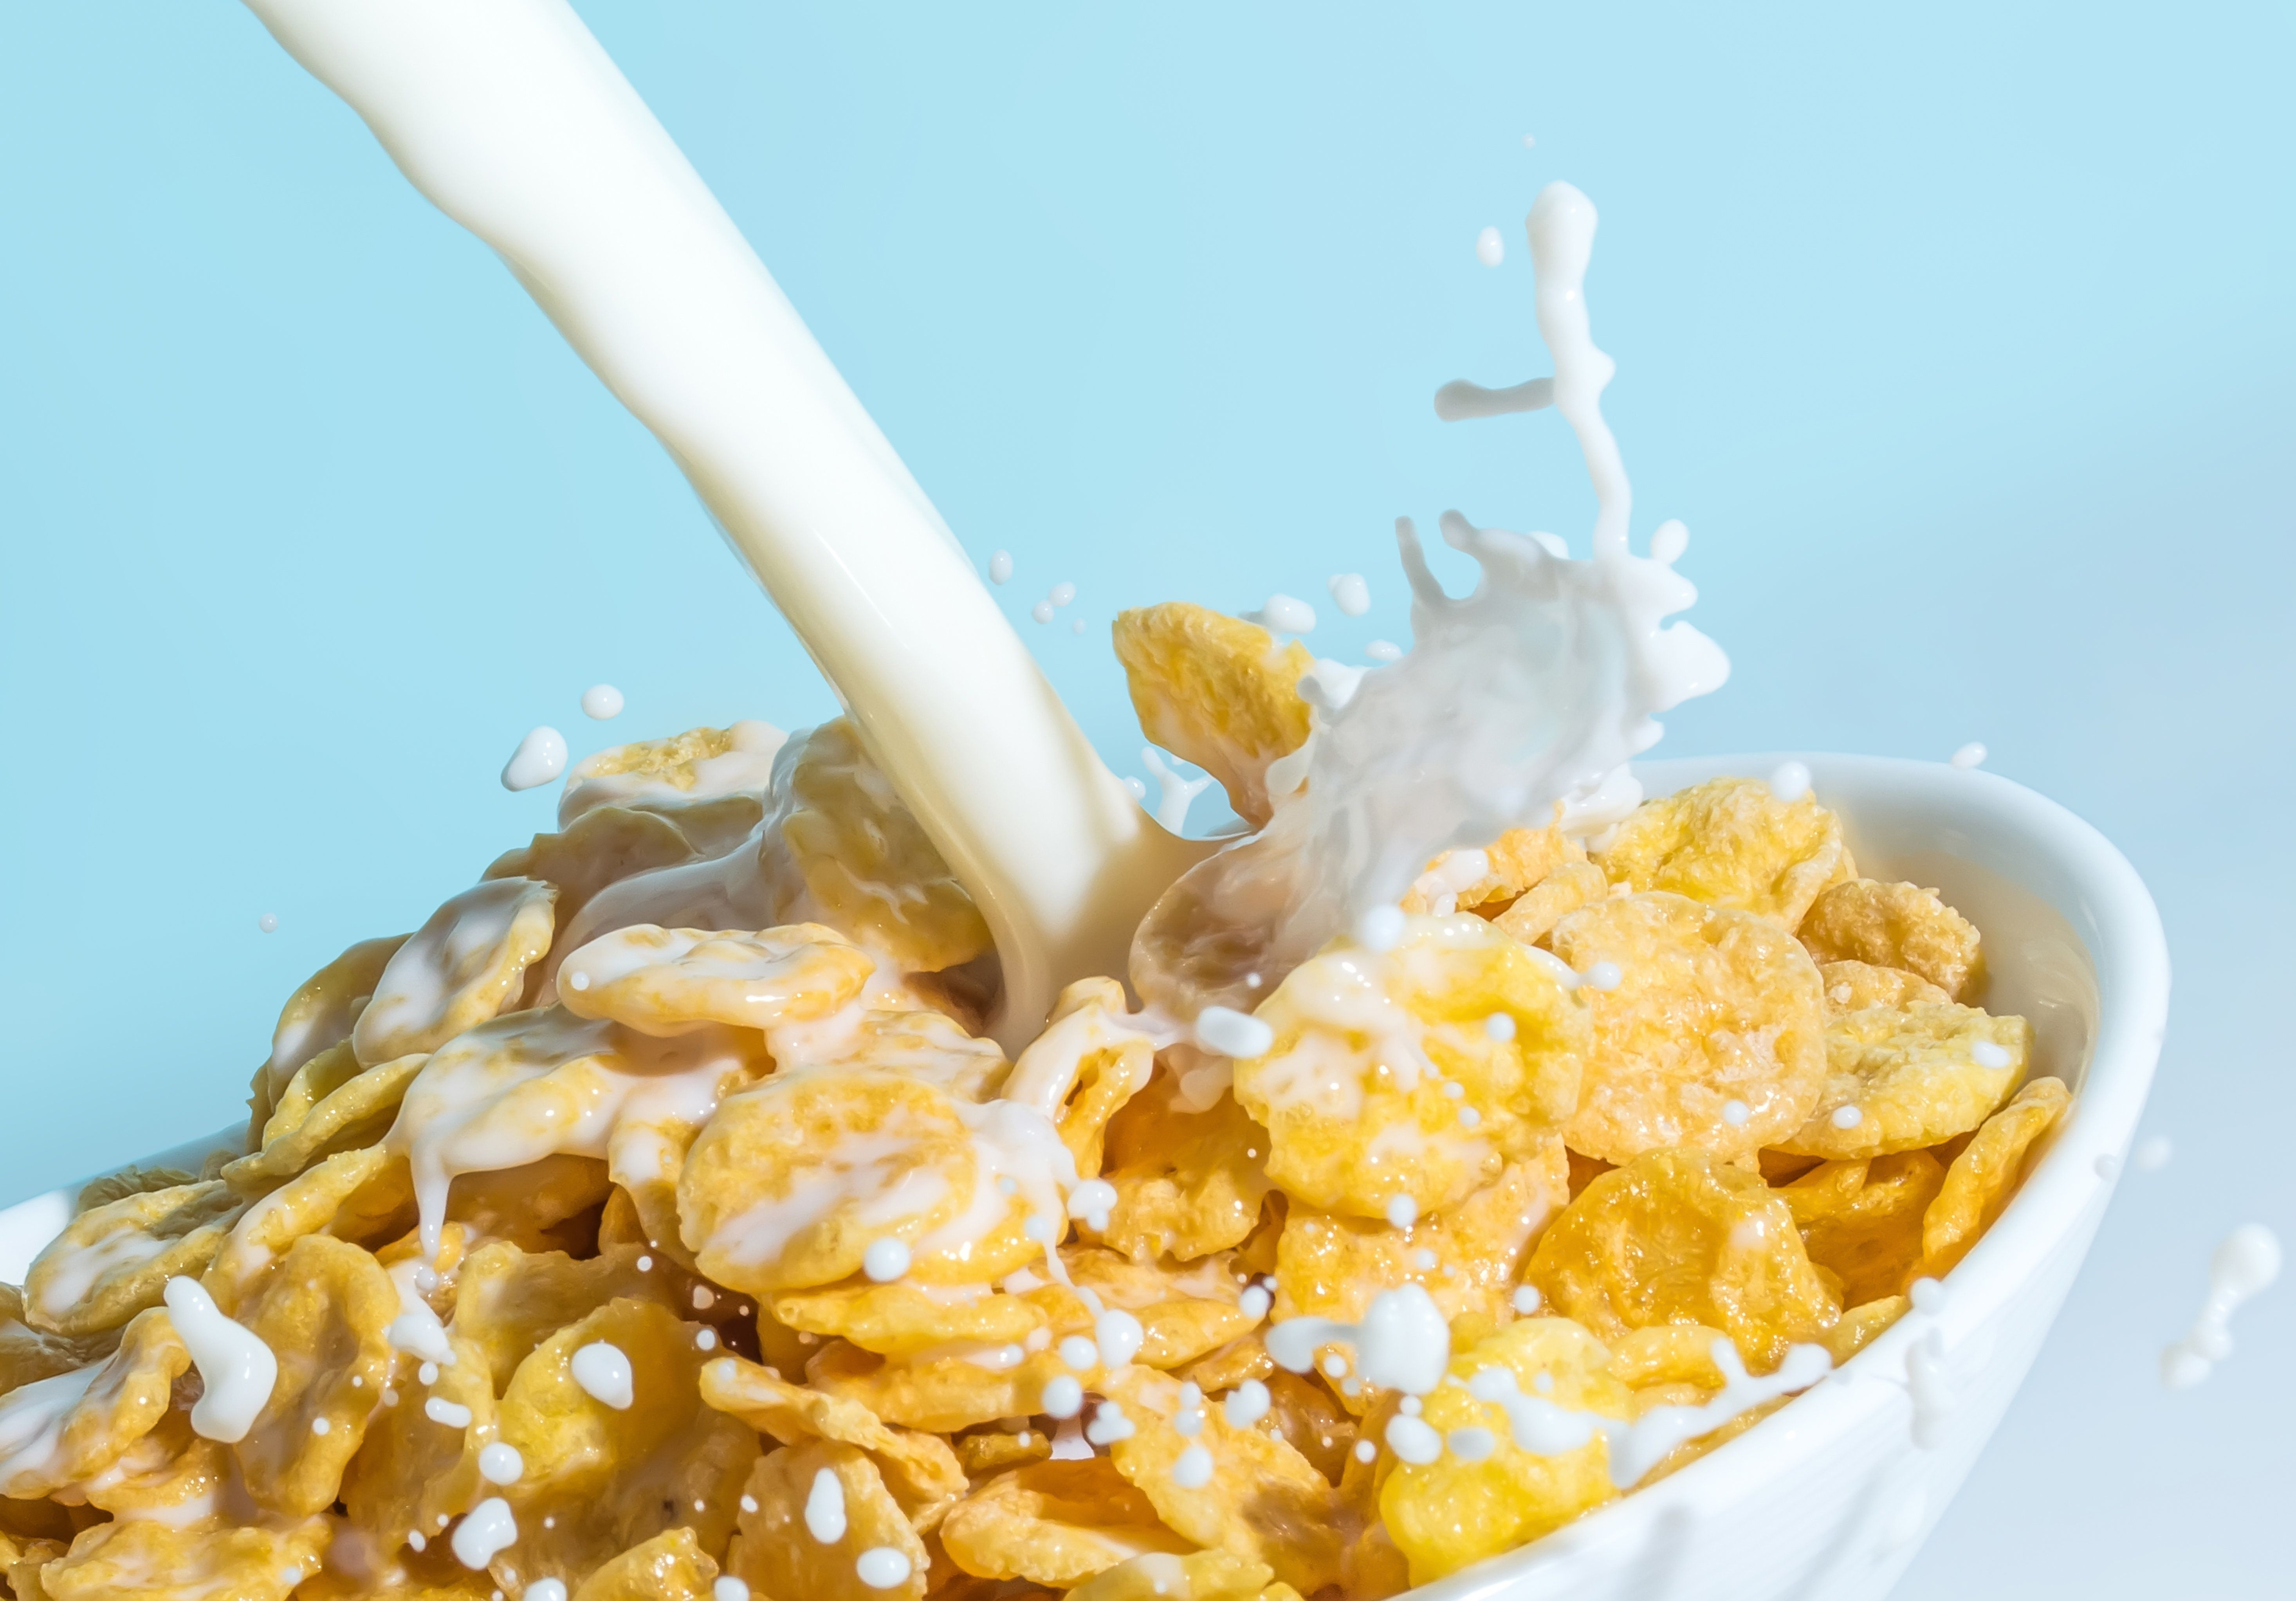 Kellogg's Is Making Beer From Leftover Corn Flakes To Reduce Food